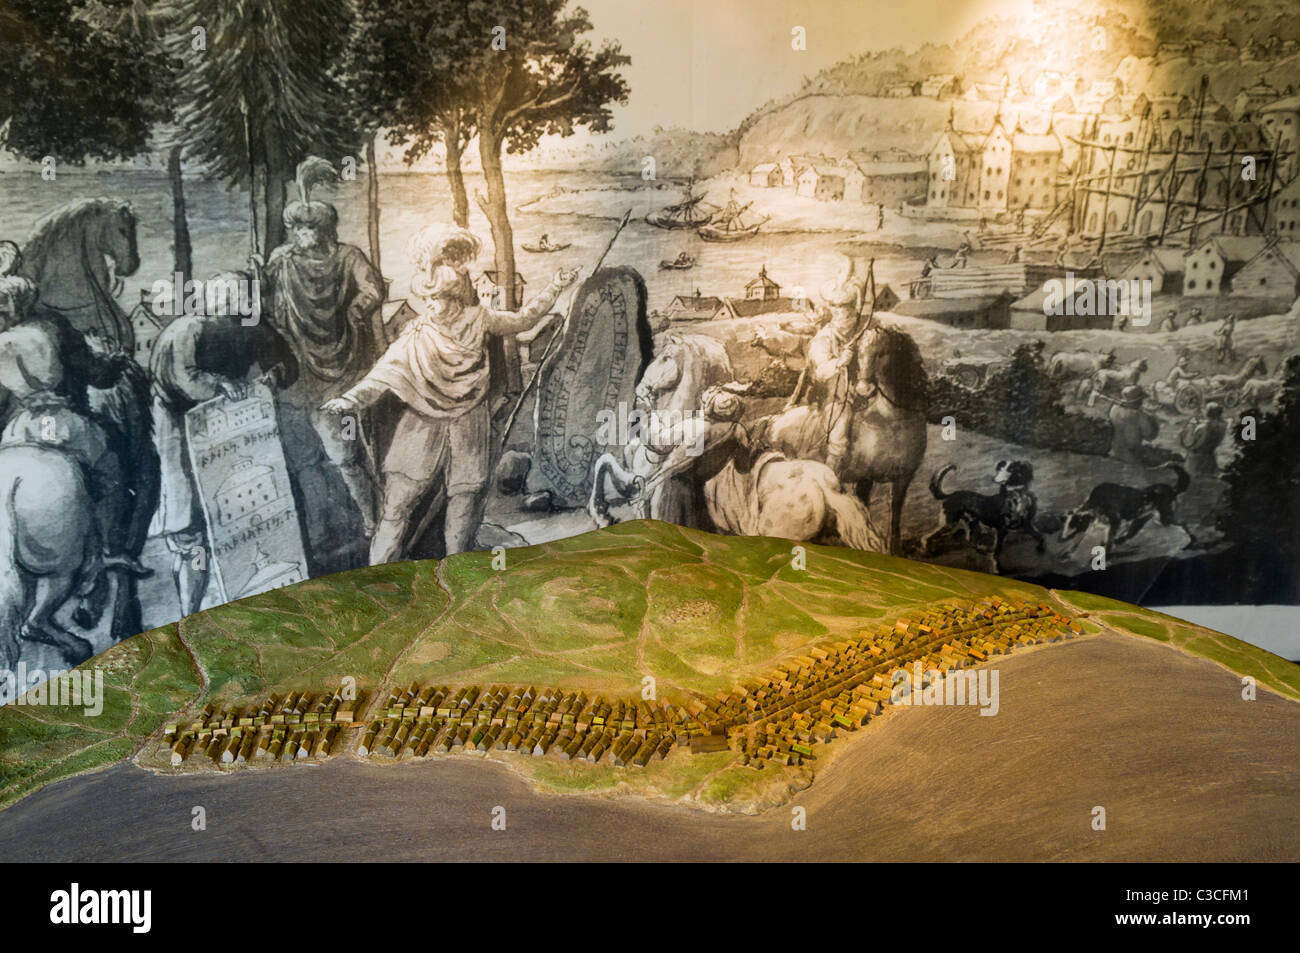 Model at Sigtuna Museum in Sweden showing what Sigtuna used to look like during the Medieval Times. - Stock Image